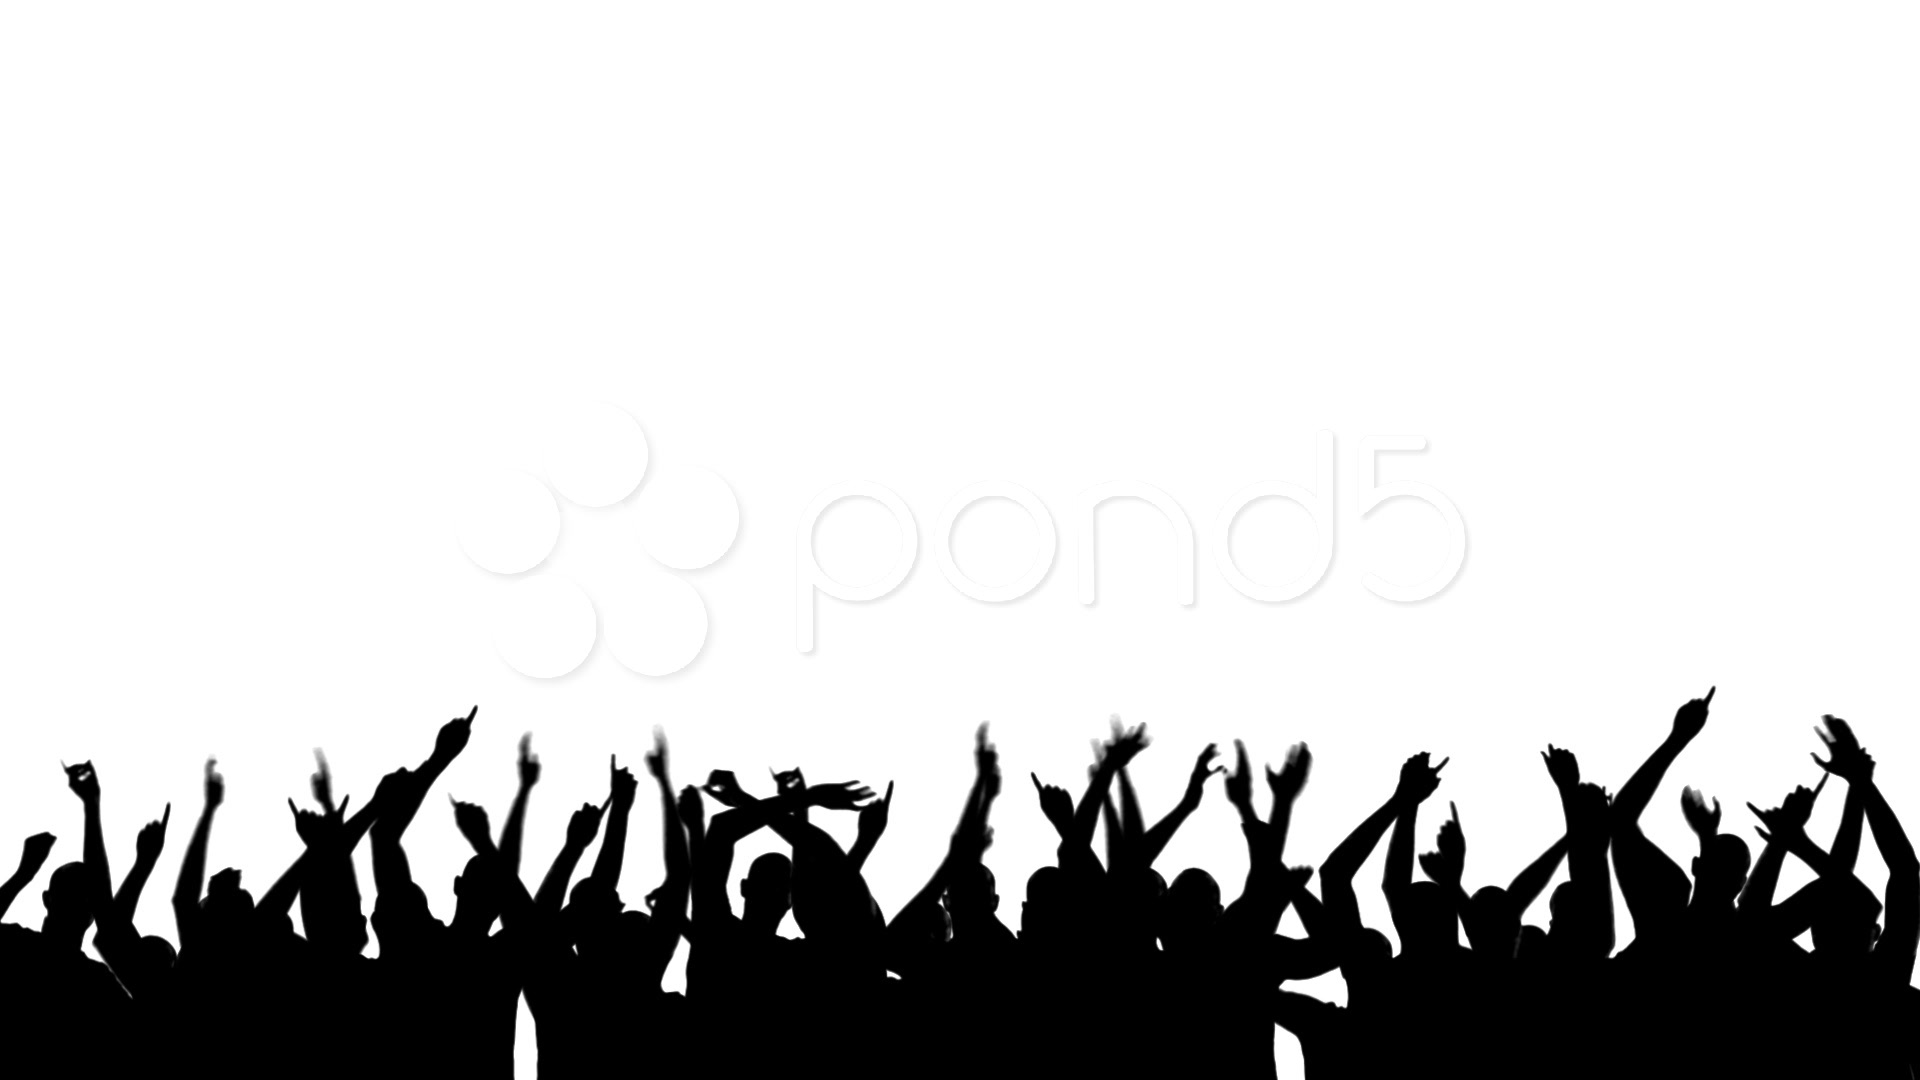 Crowd clipart large crowd Crowd of angry Clipart Crowd